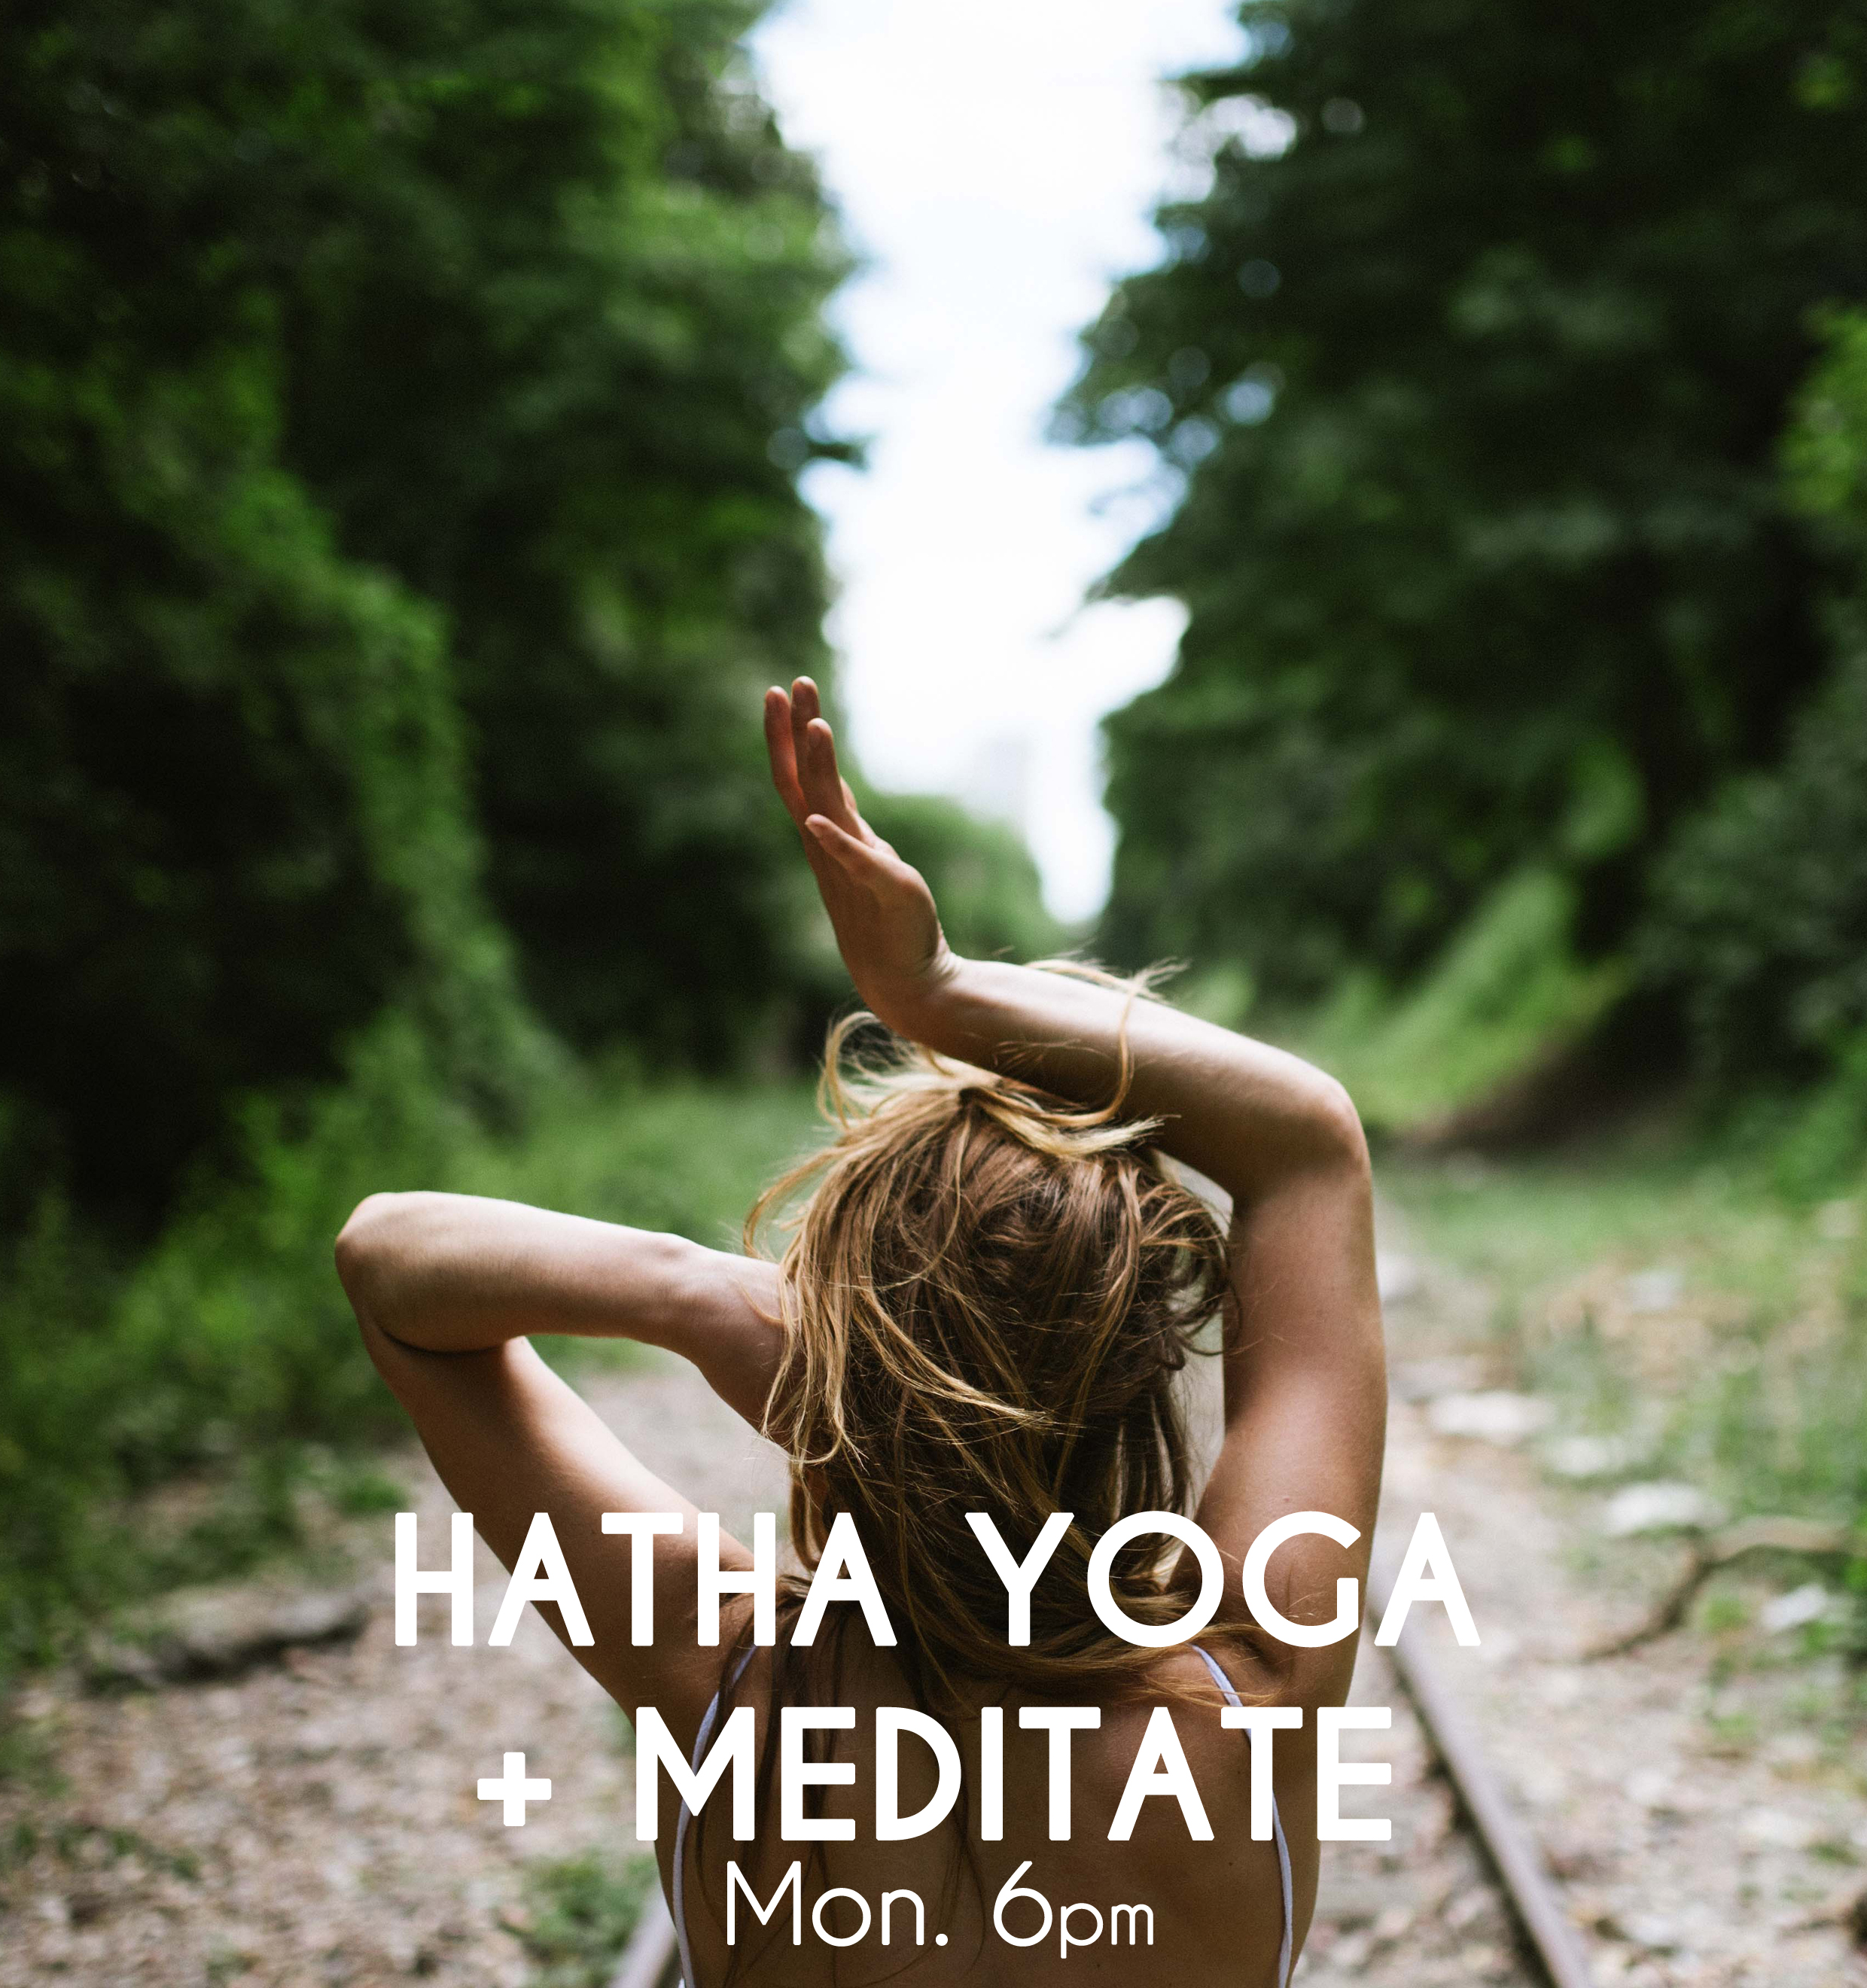 HATHA YOGA + MEDITATE - GentleFlexibility & MobilityCalm the Mind